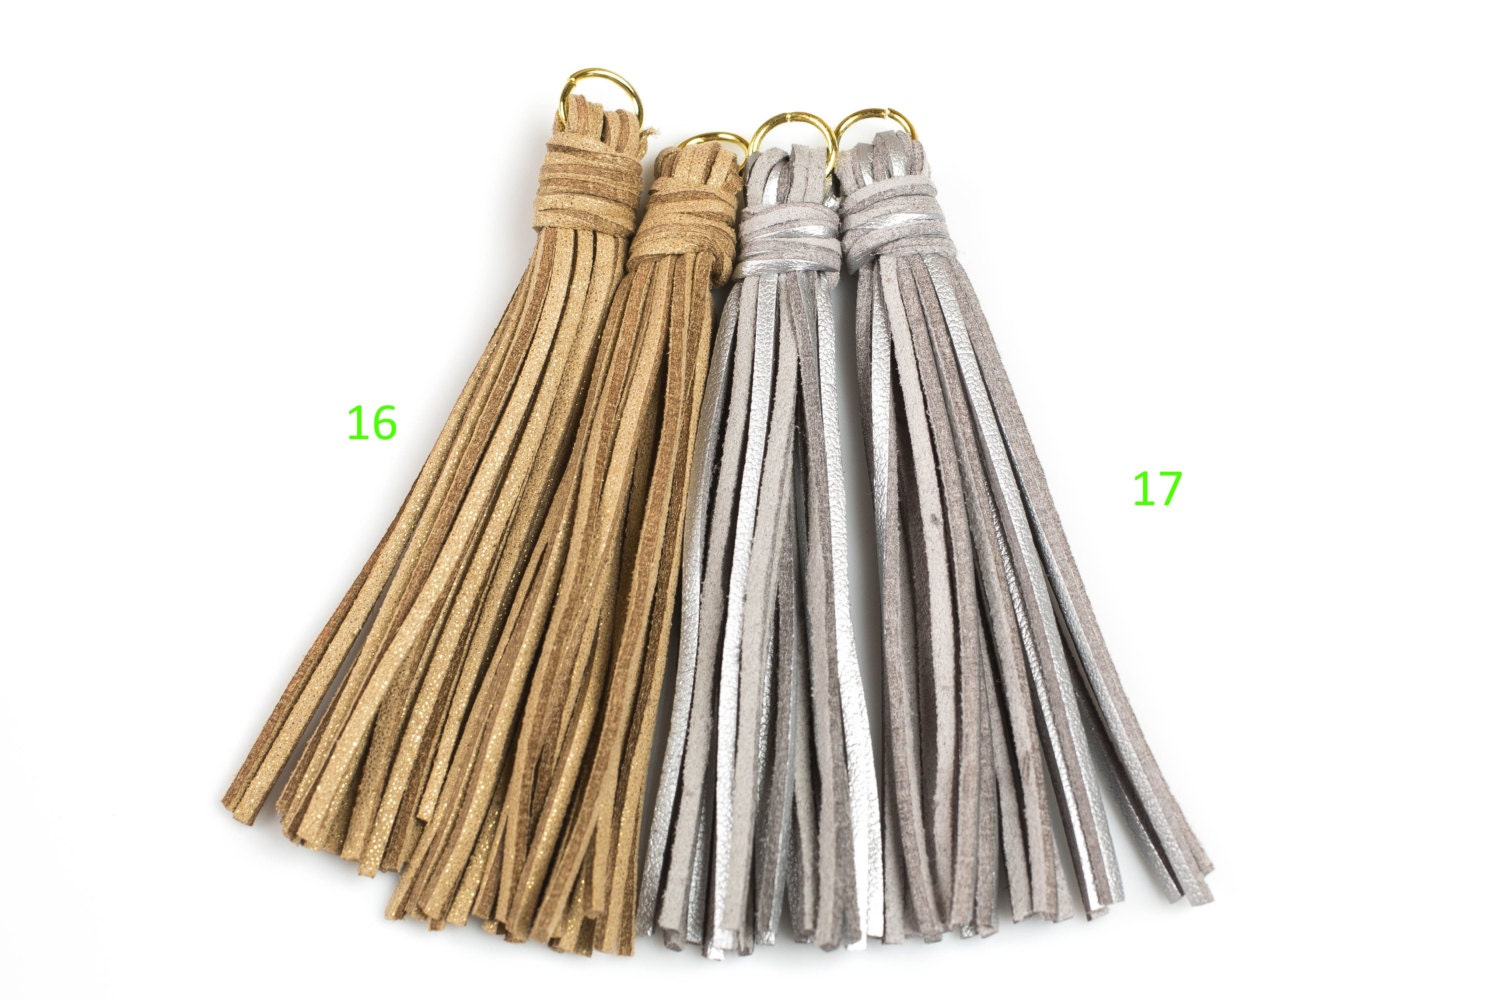 3 Pcs Suede TASSEL Tassles High Quality From Beadboat1